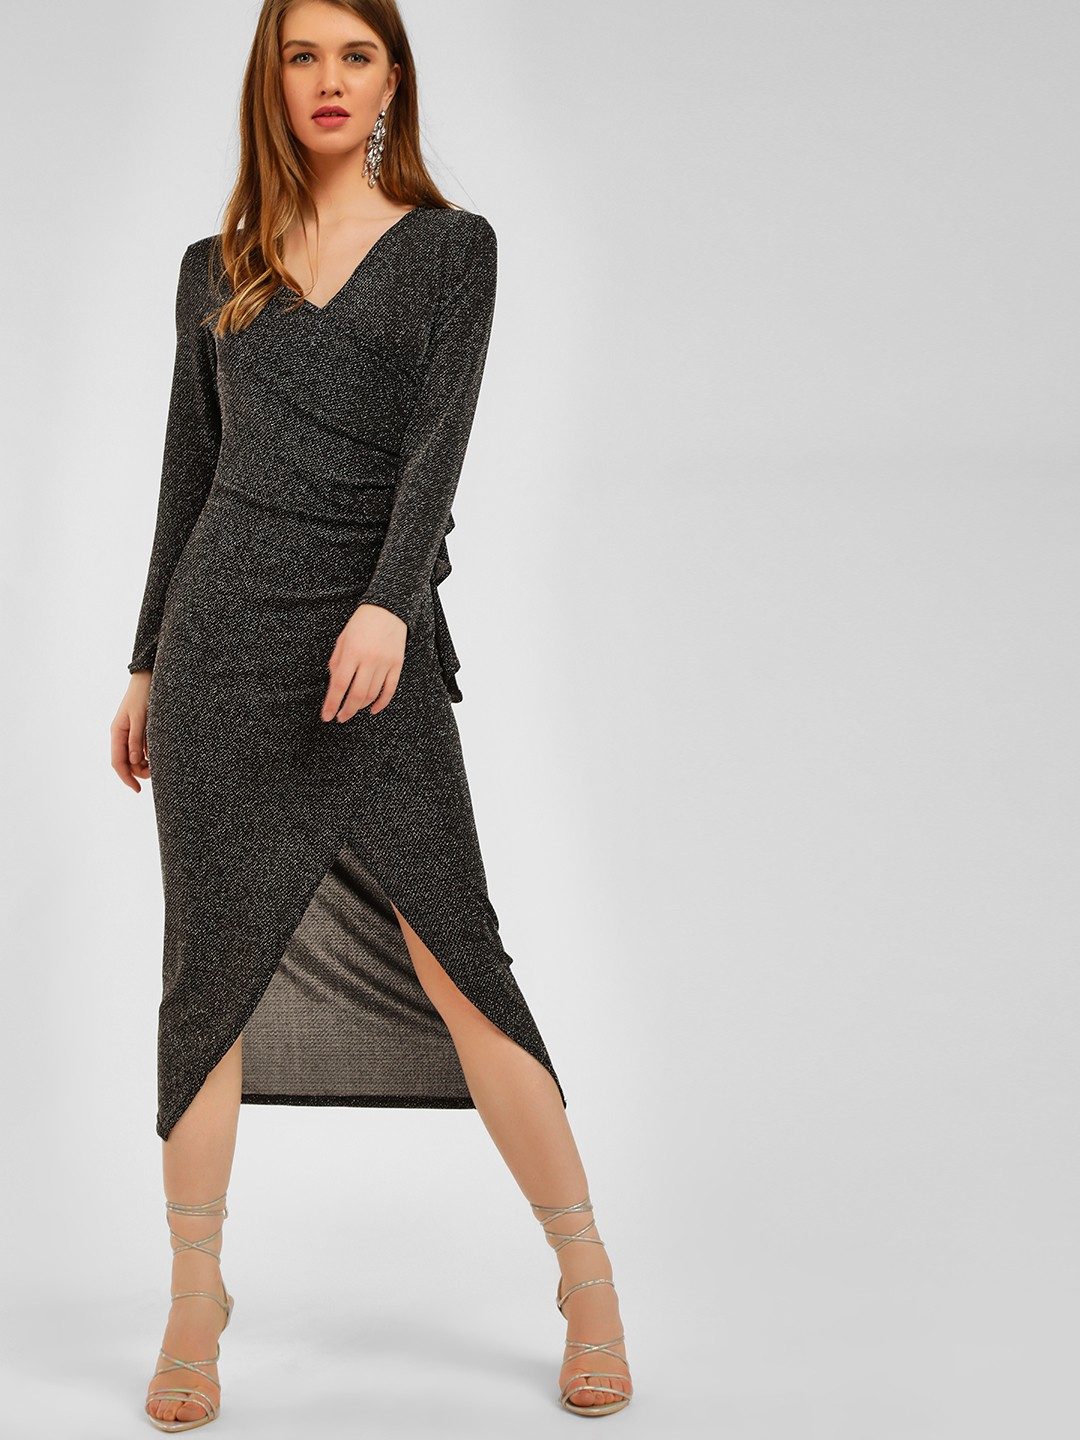 Origami Lily Silver Shimmer Ruched Midi Dress 1